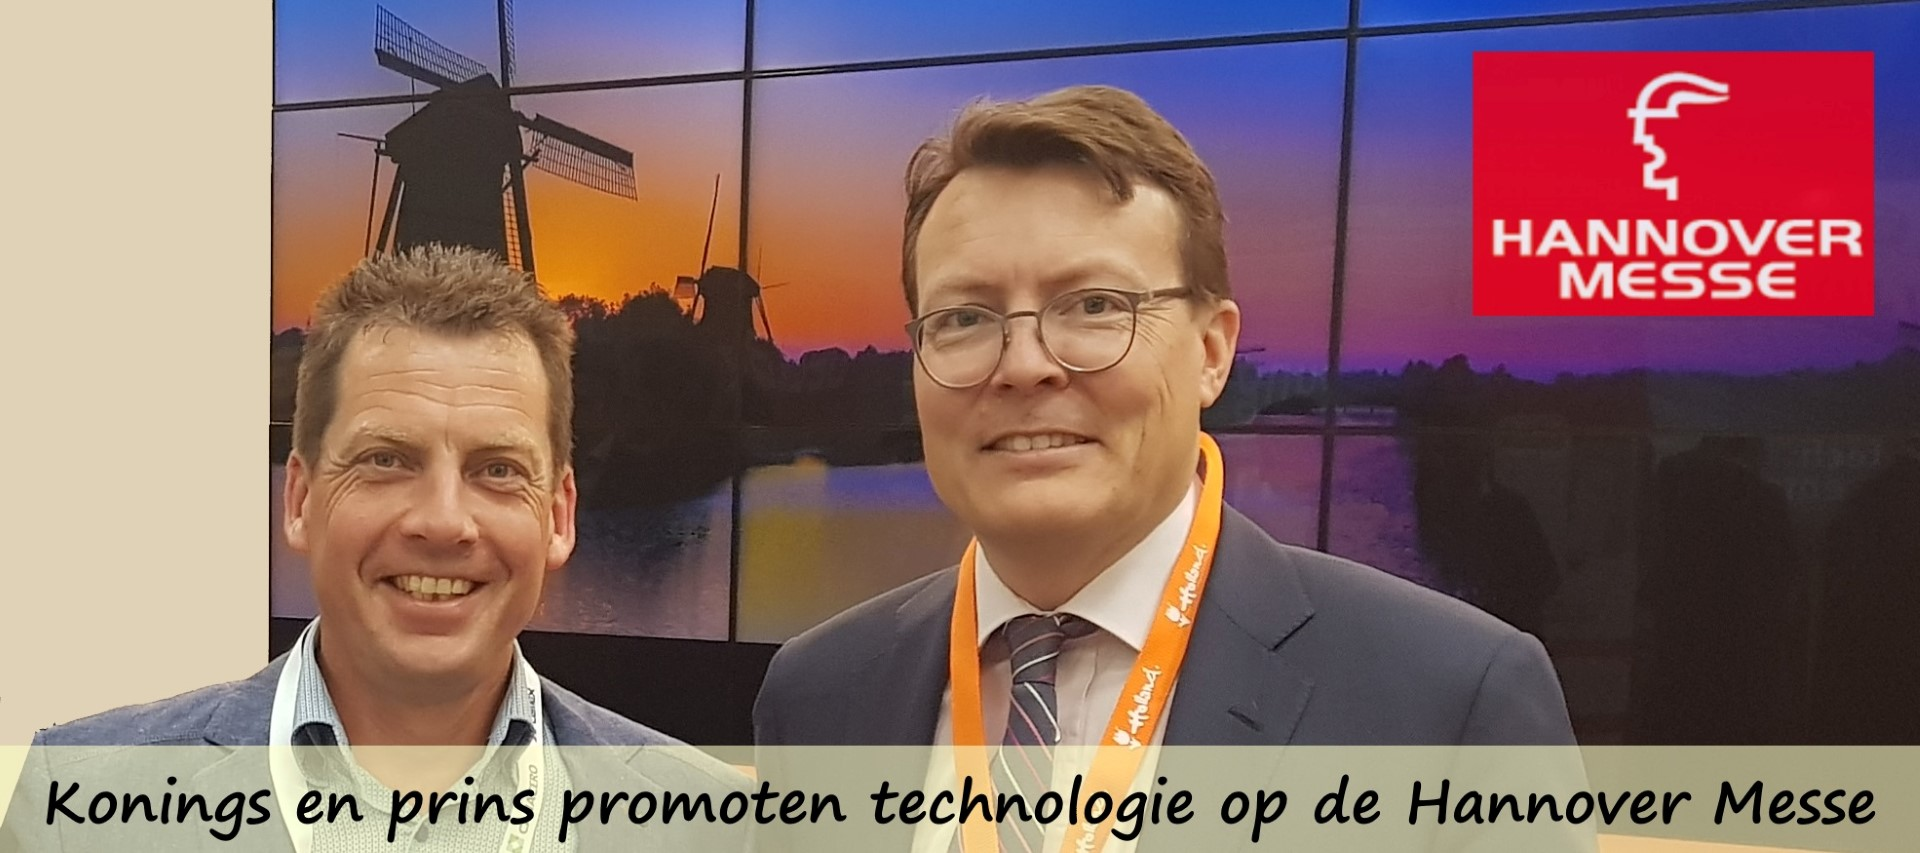 Hannover Messe with Prince Constantijn